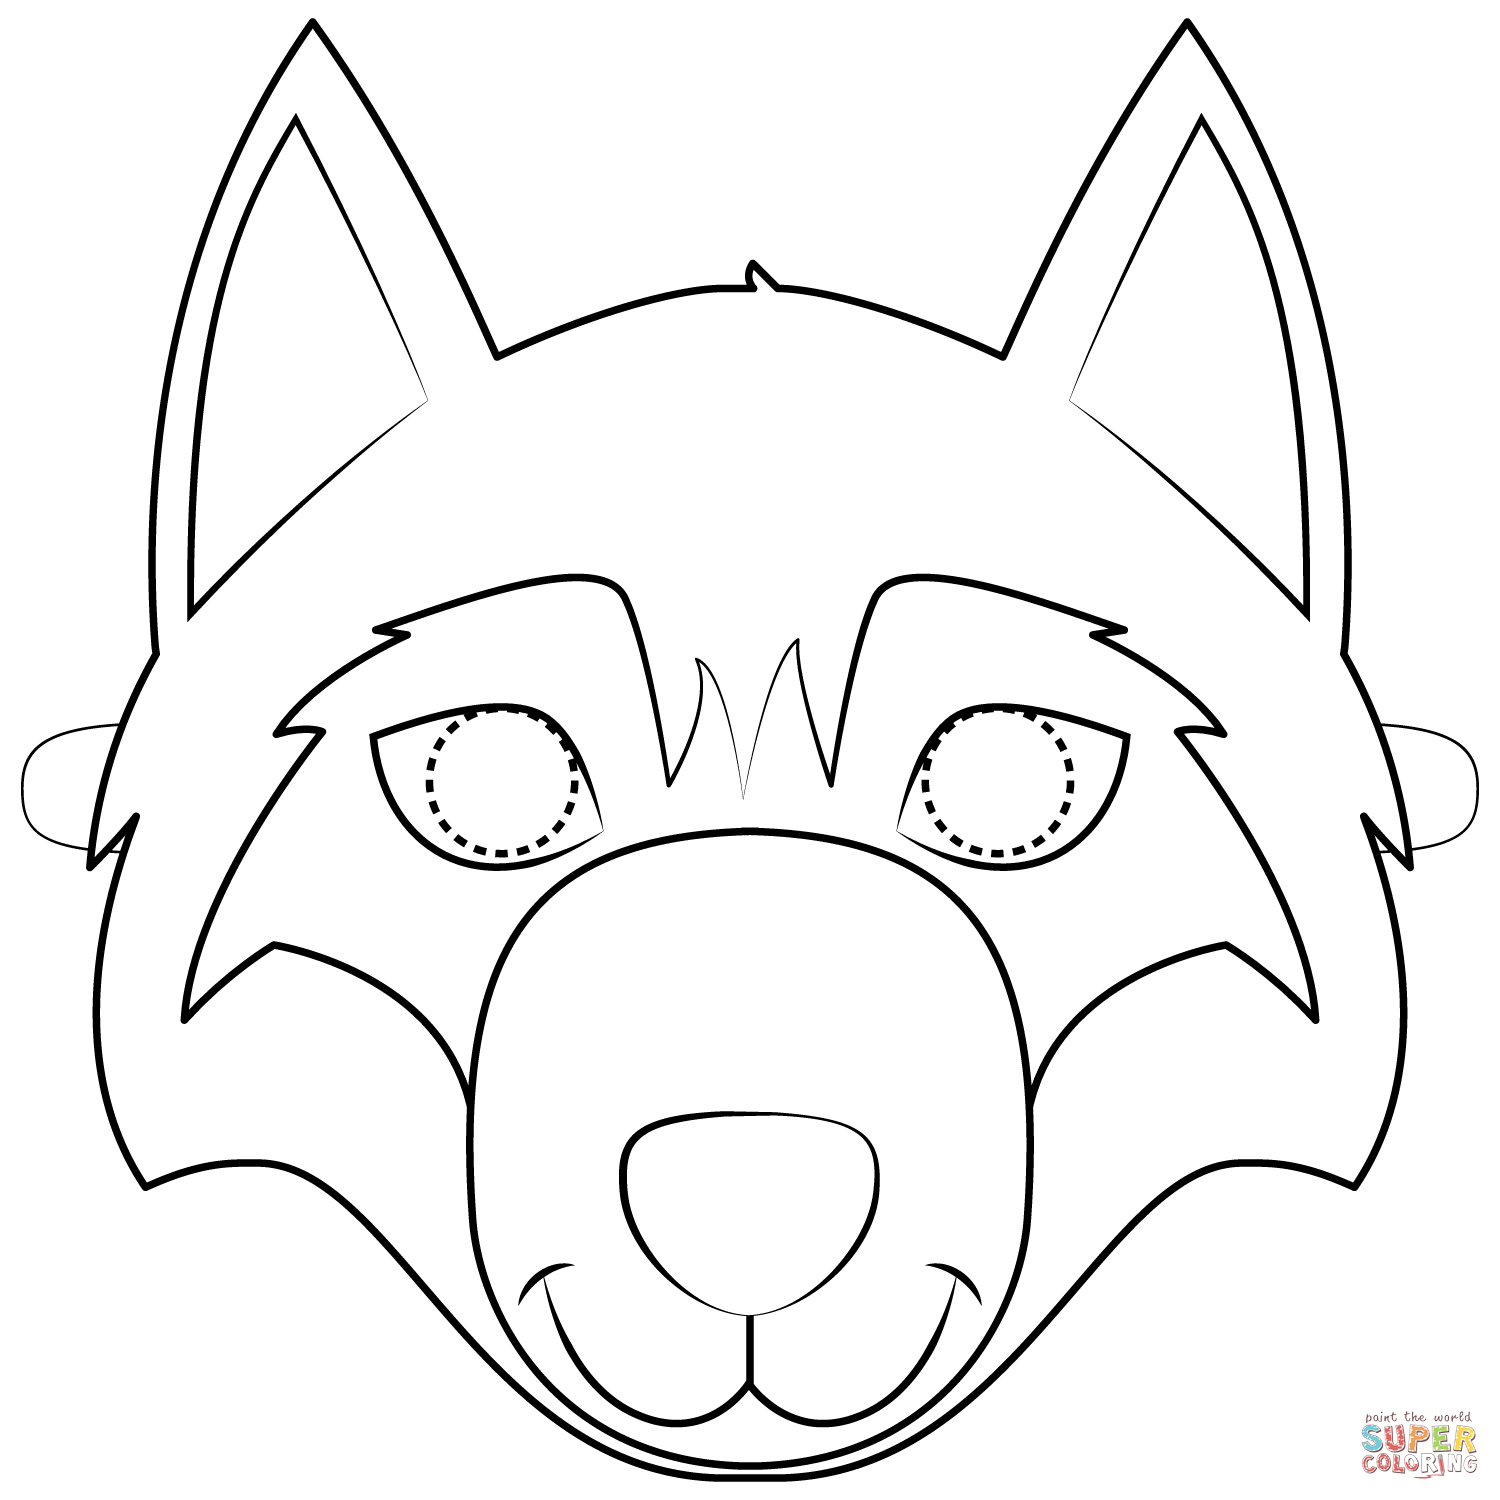 Wolf Mask Coloring Page | Free Printable Coloring Pages - Free Printable Wolf Mask